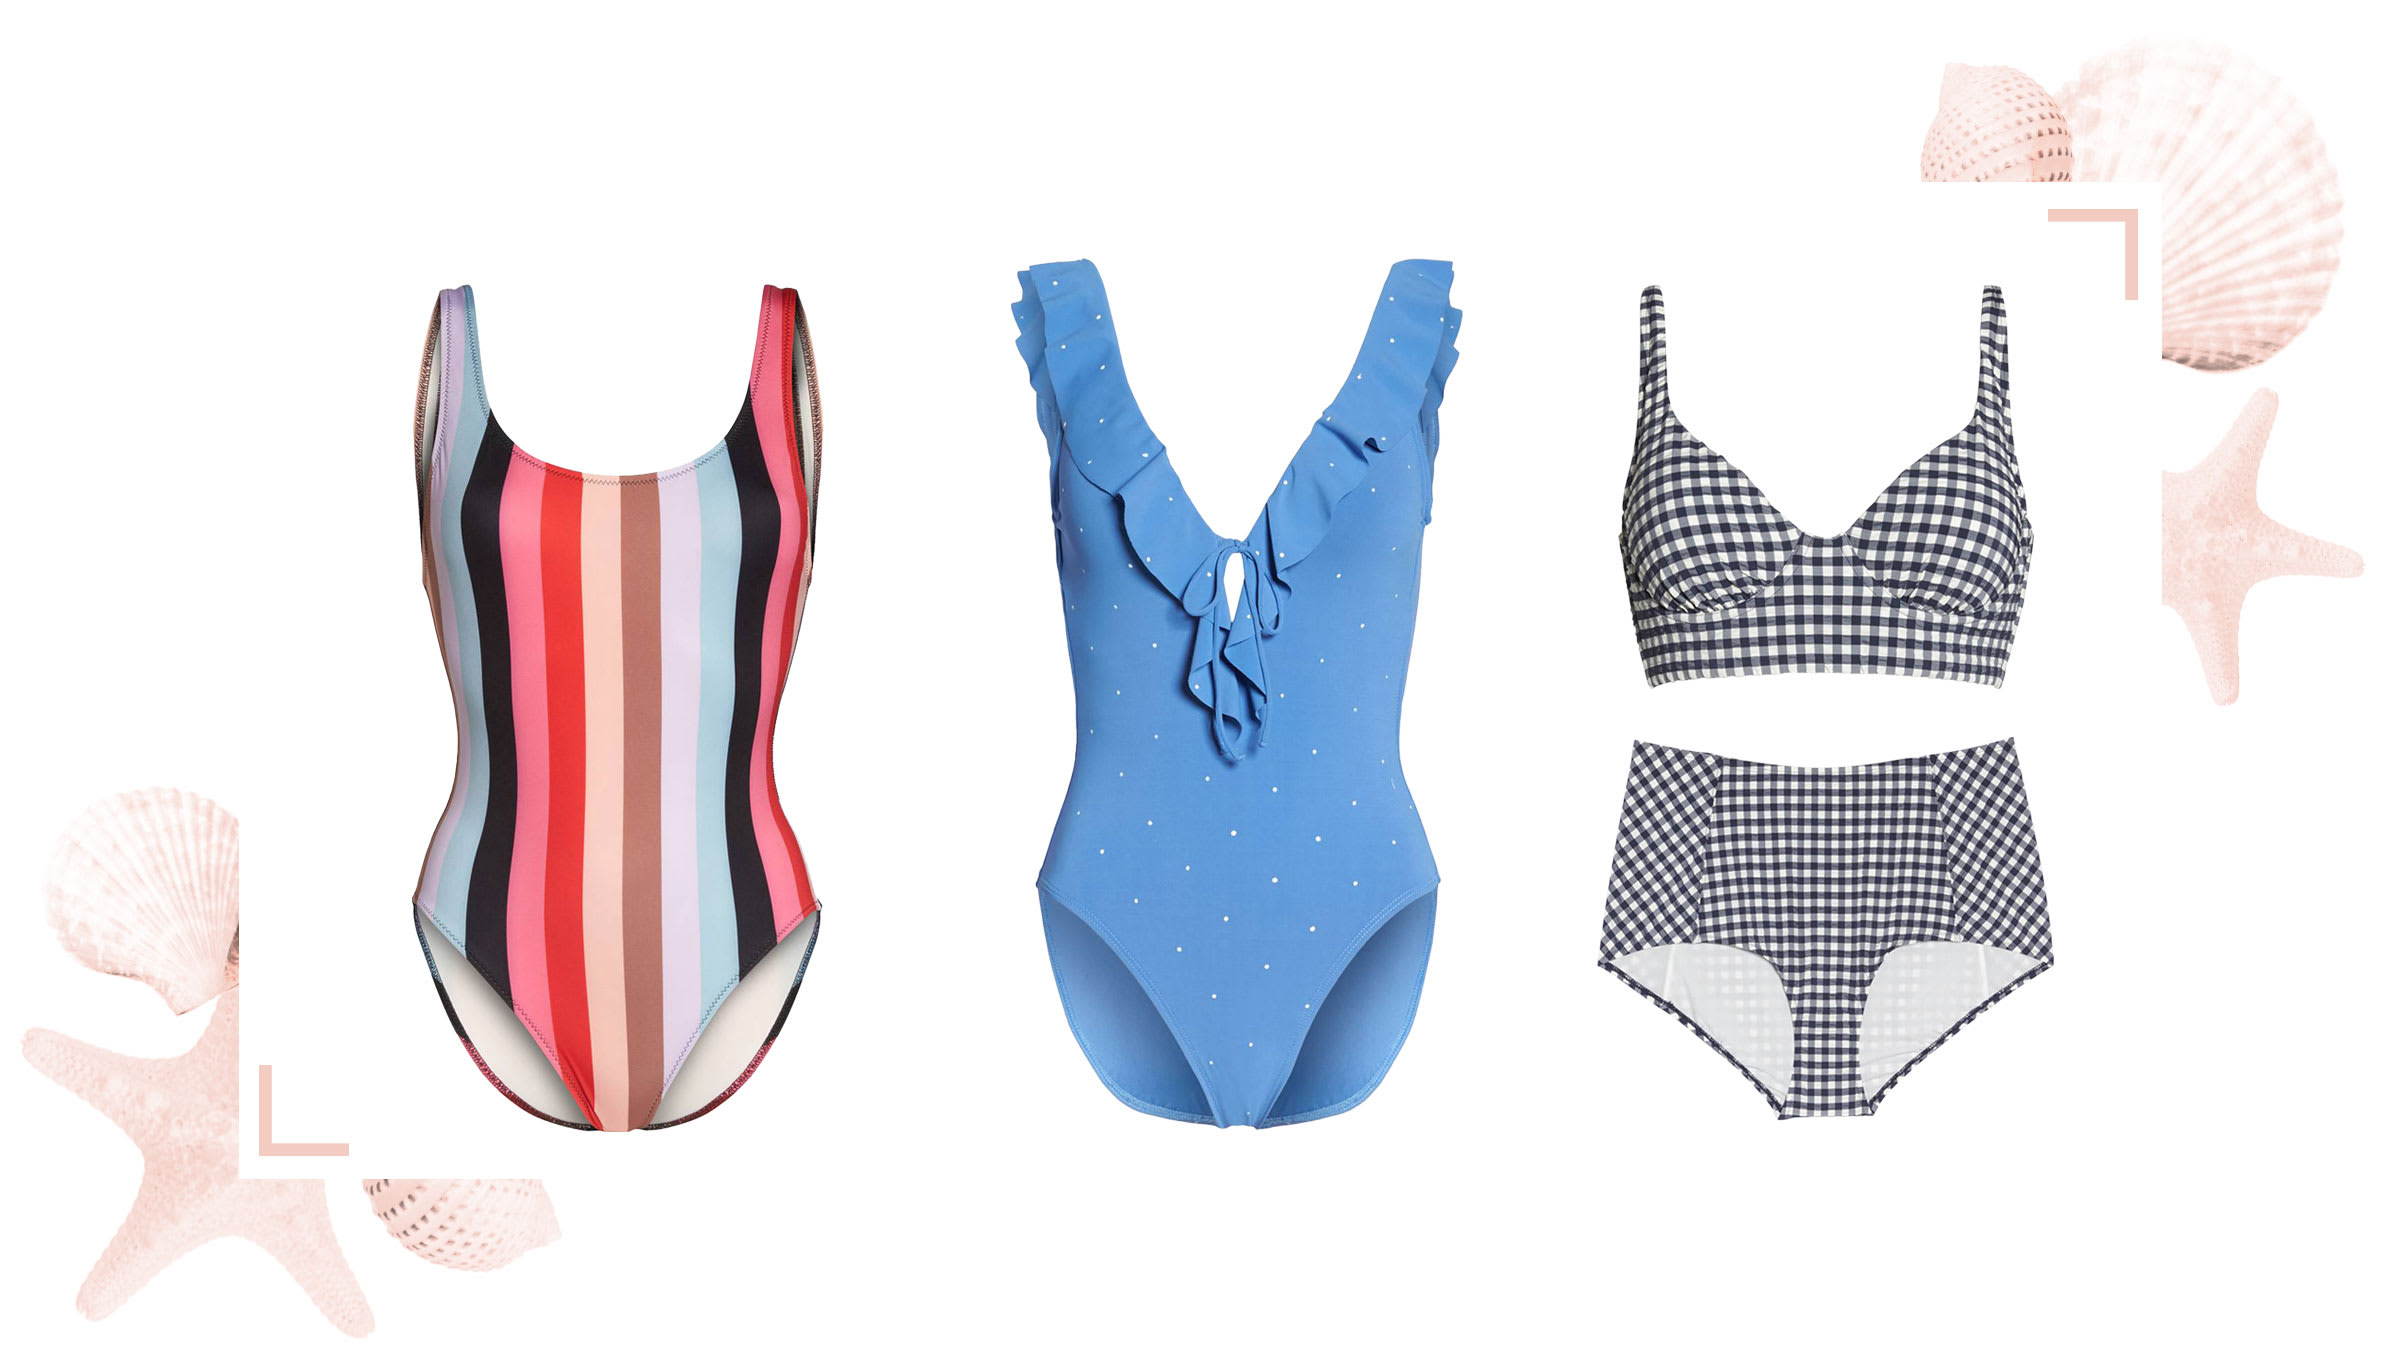 Preppy swimsuits for a Martha's Vineyard vacation